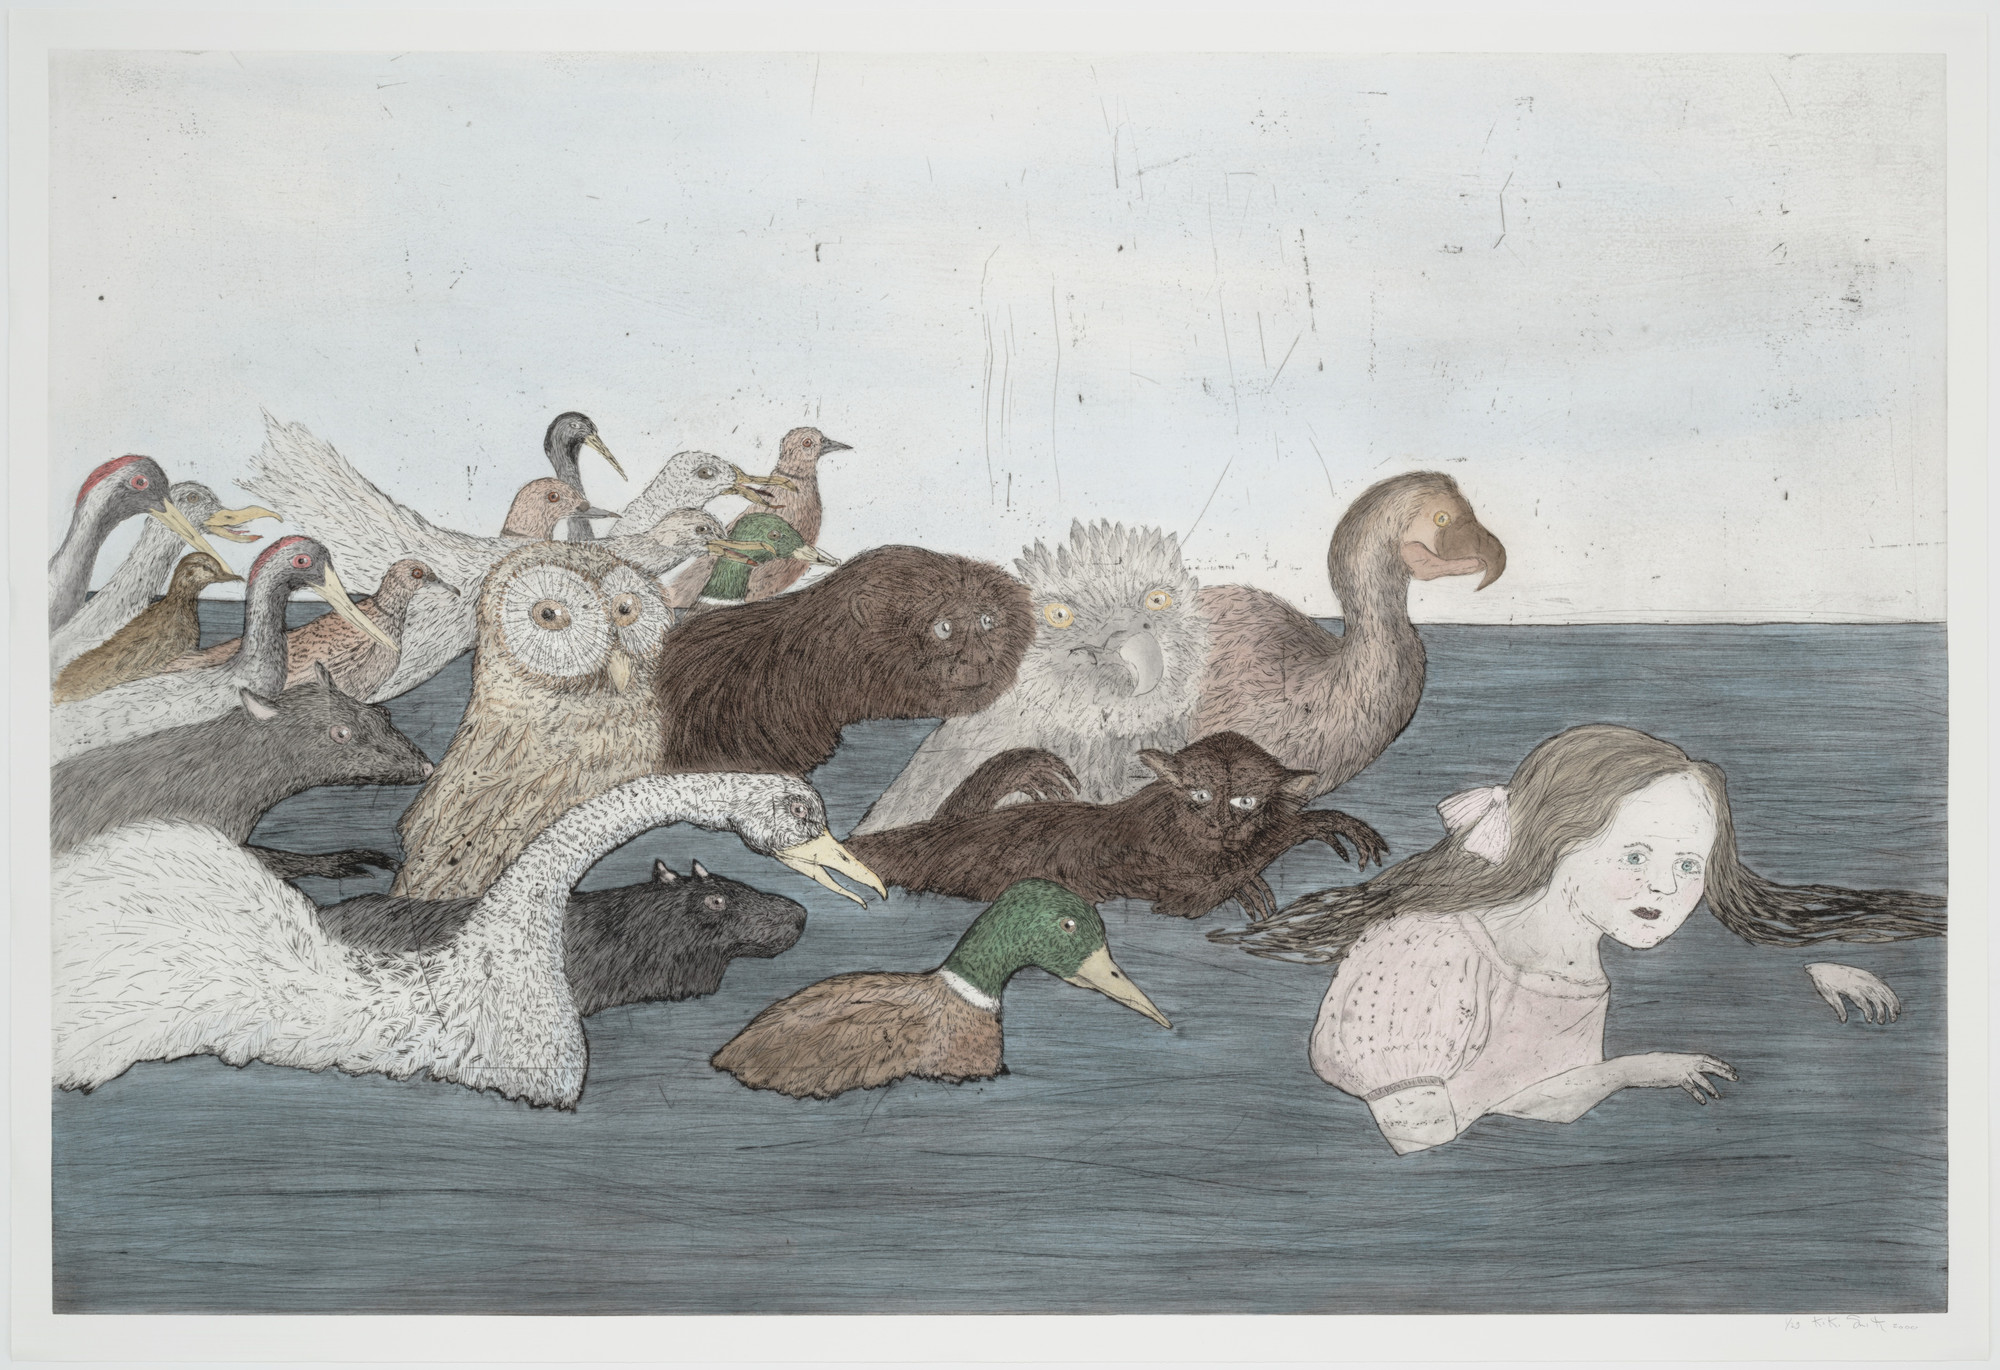 Kiki Smith. Pool of Tears 2 (after Lewis Carroll). 2000